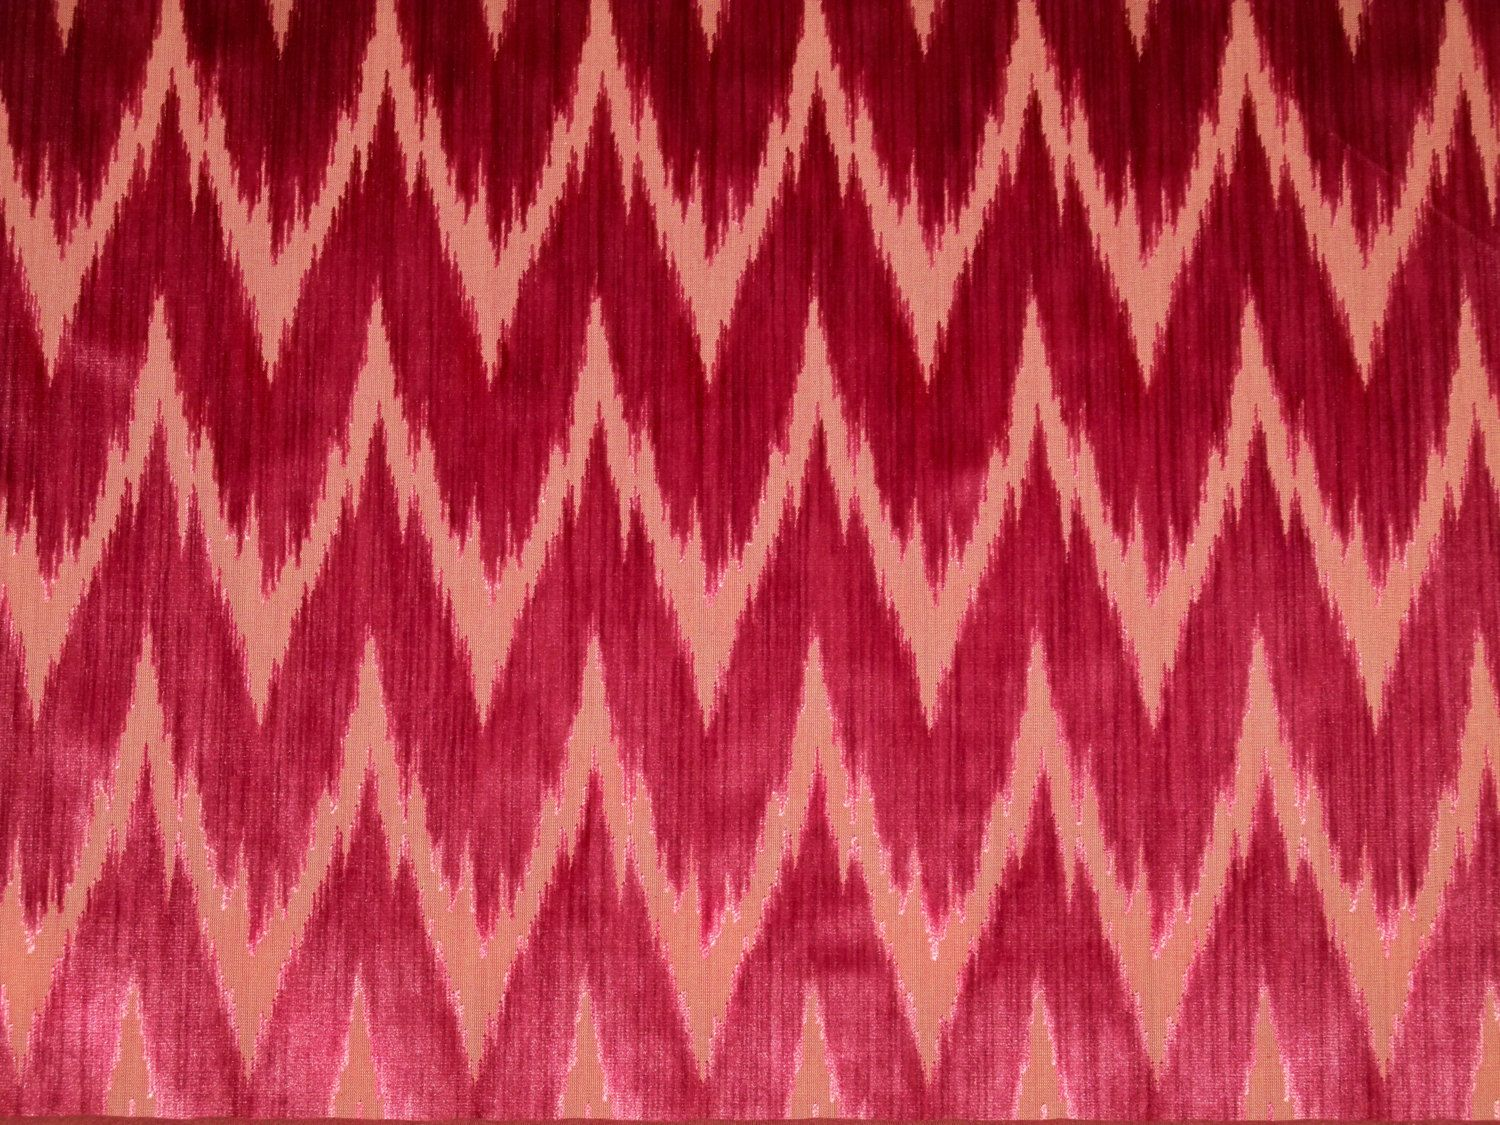 CLARENCE HOUSE CASTELLO ARAGONESE FLAME STITCH STRIE CUT VELVET FABRIC RED